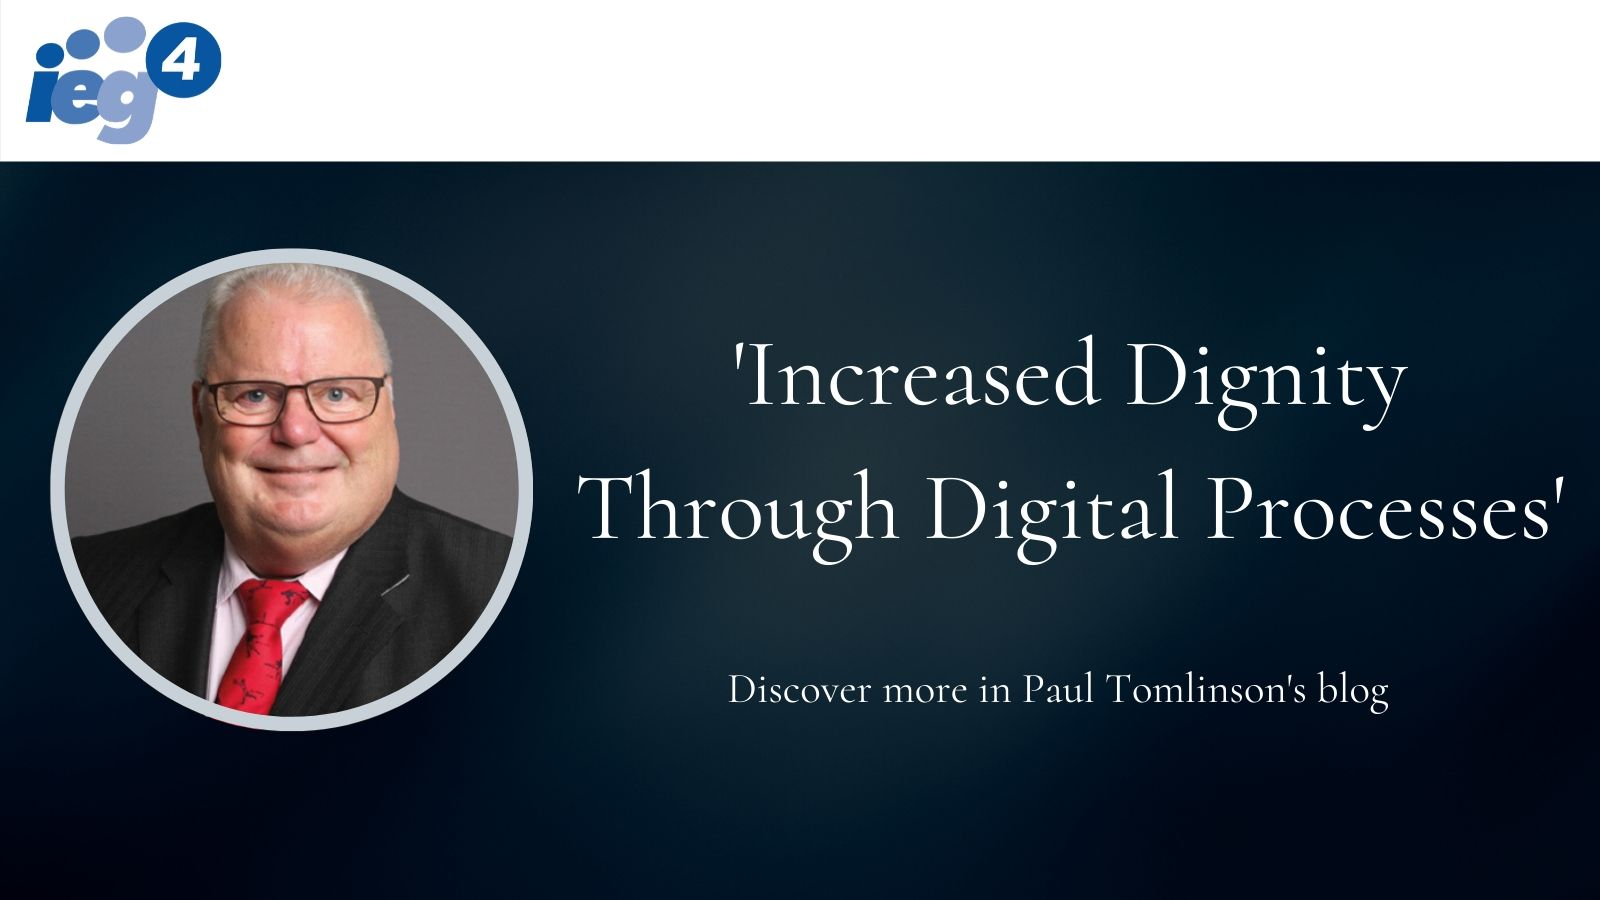 Visual showing IEG4 logo and Paul Tomlinson and Blog Title